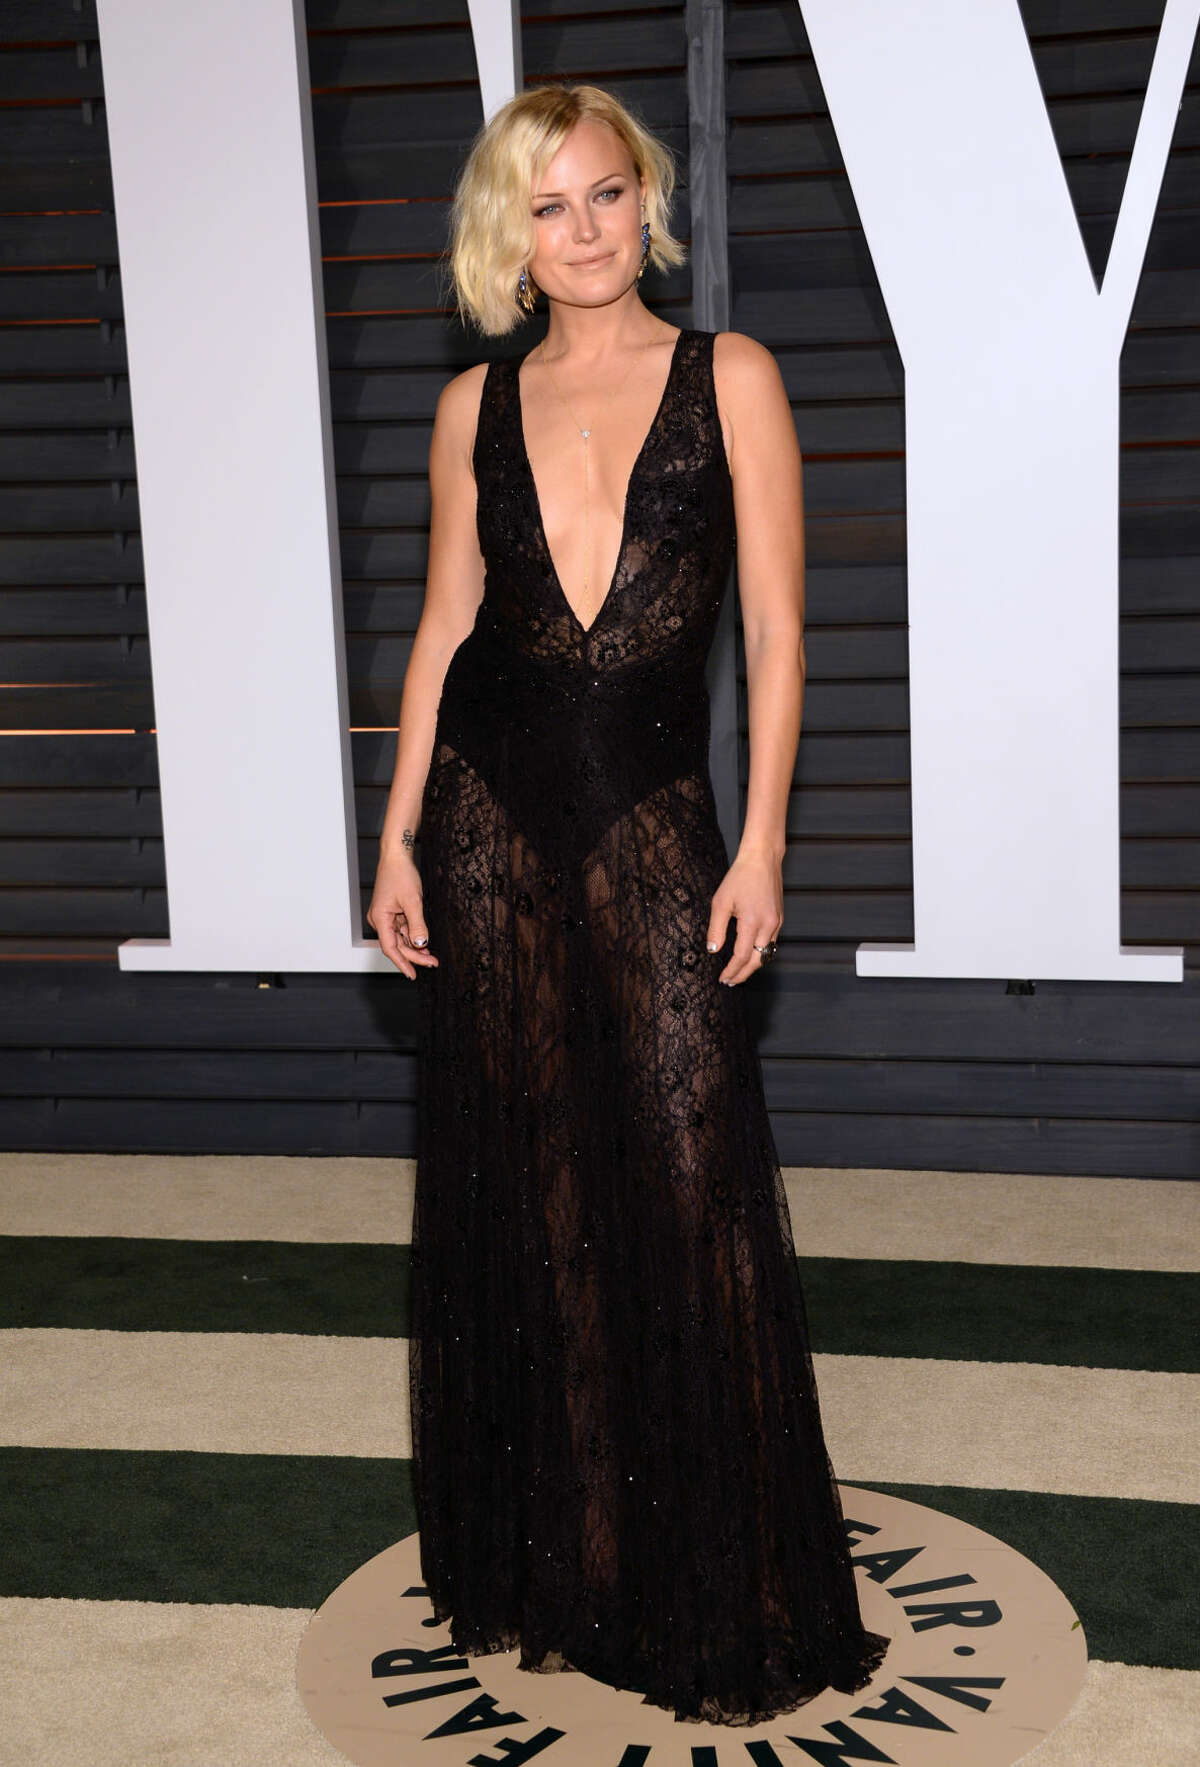 Malin Akerman arrives at the 2015 Vanity Fair Oscar Party on Sunday, Feb. 22, 2015, in Beverly Hills, Calif. (Photo by Evan Agostini/Invision/AP)